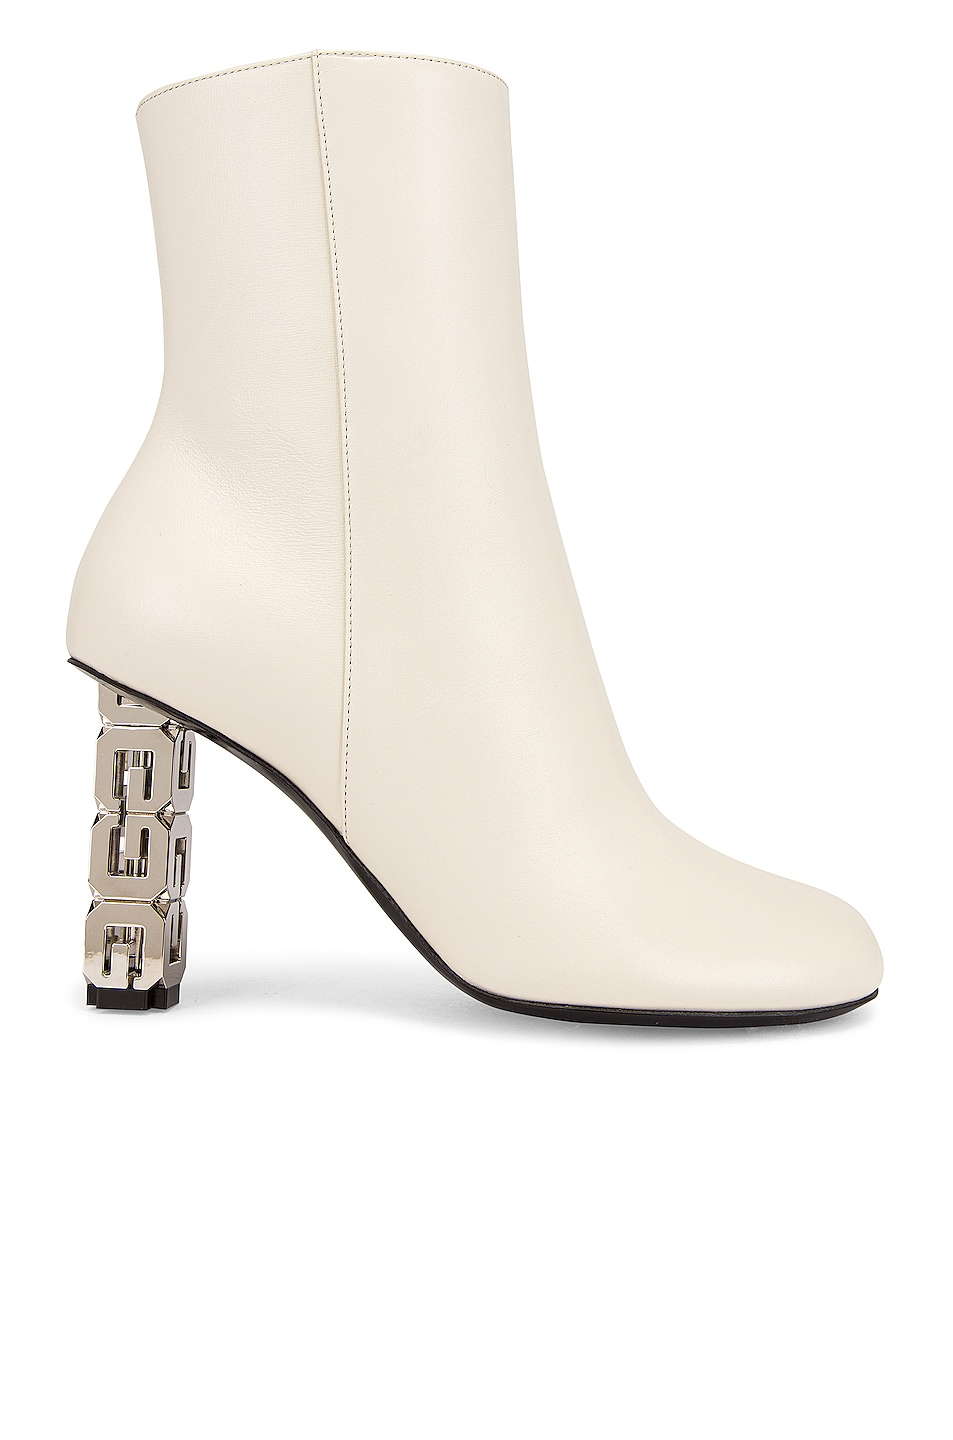 Image 1 of Givenchy G Cube Boots in Ivory